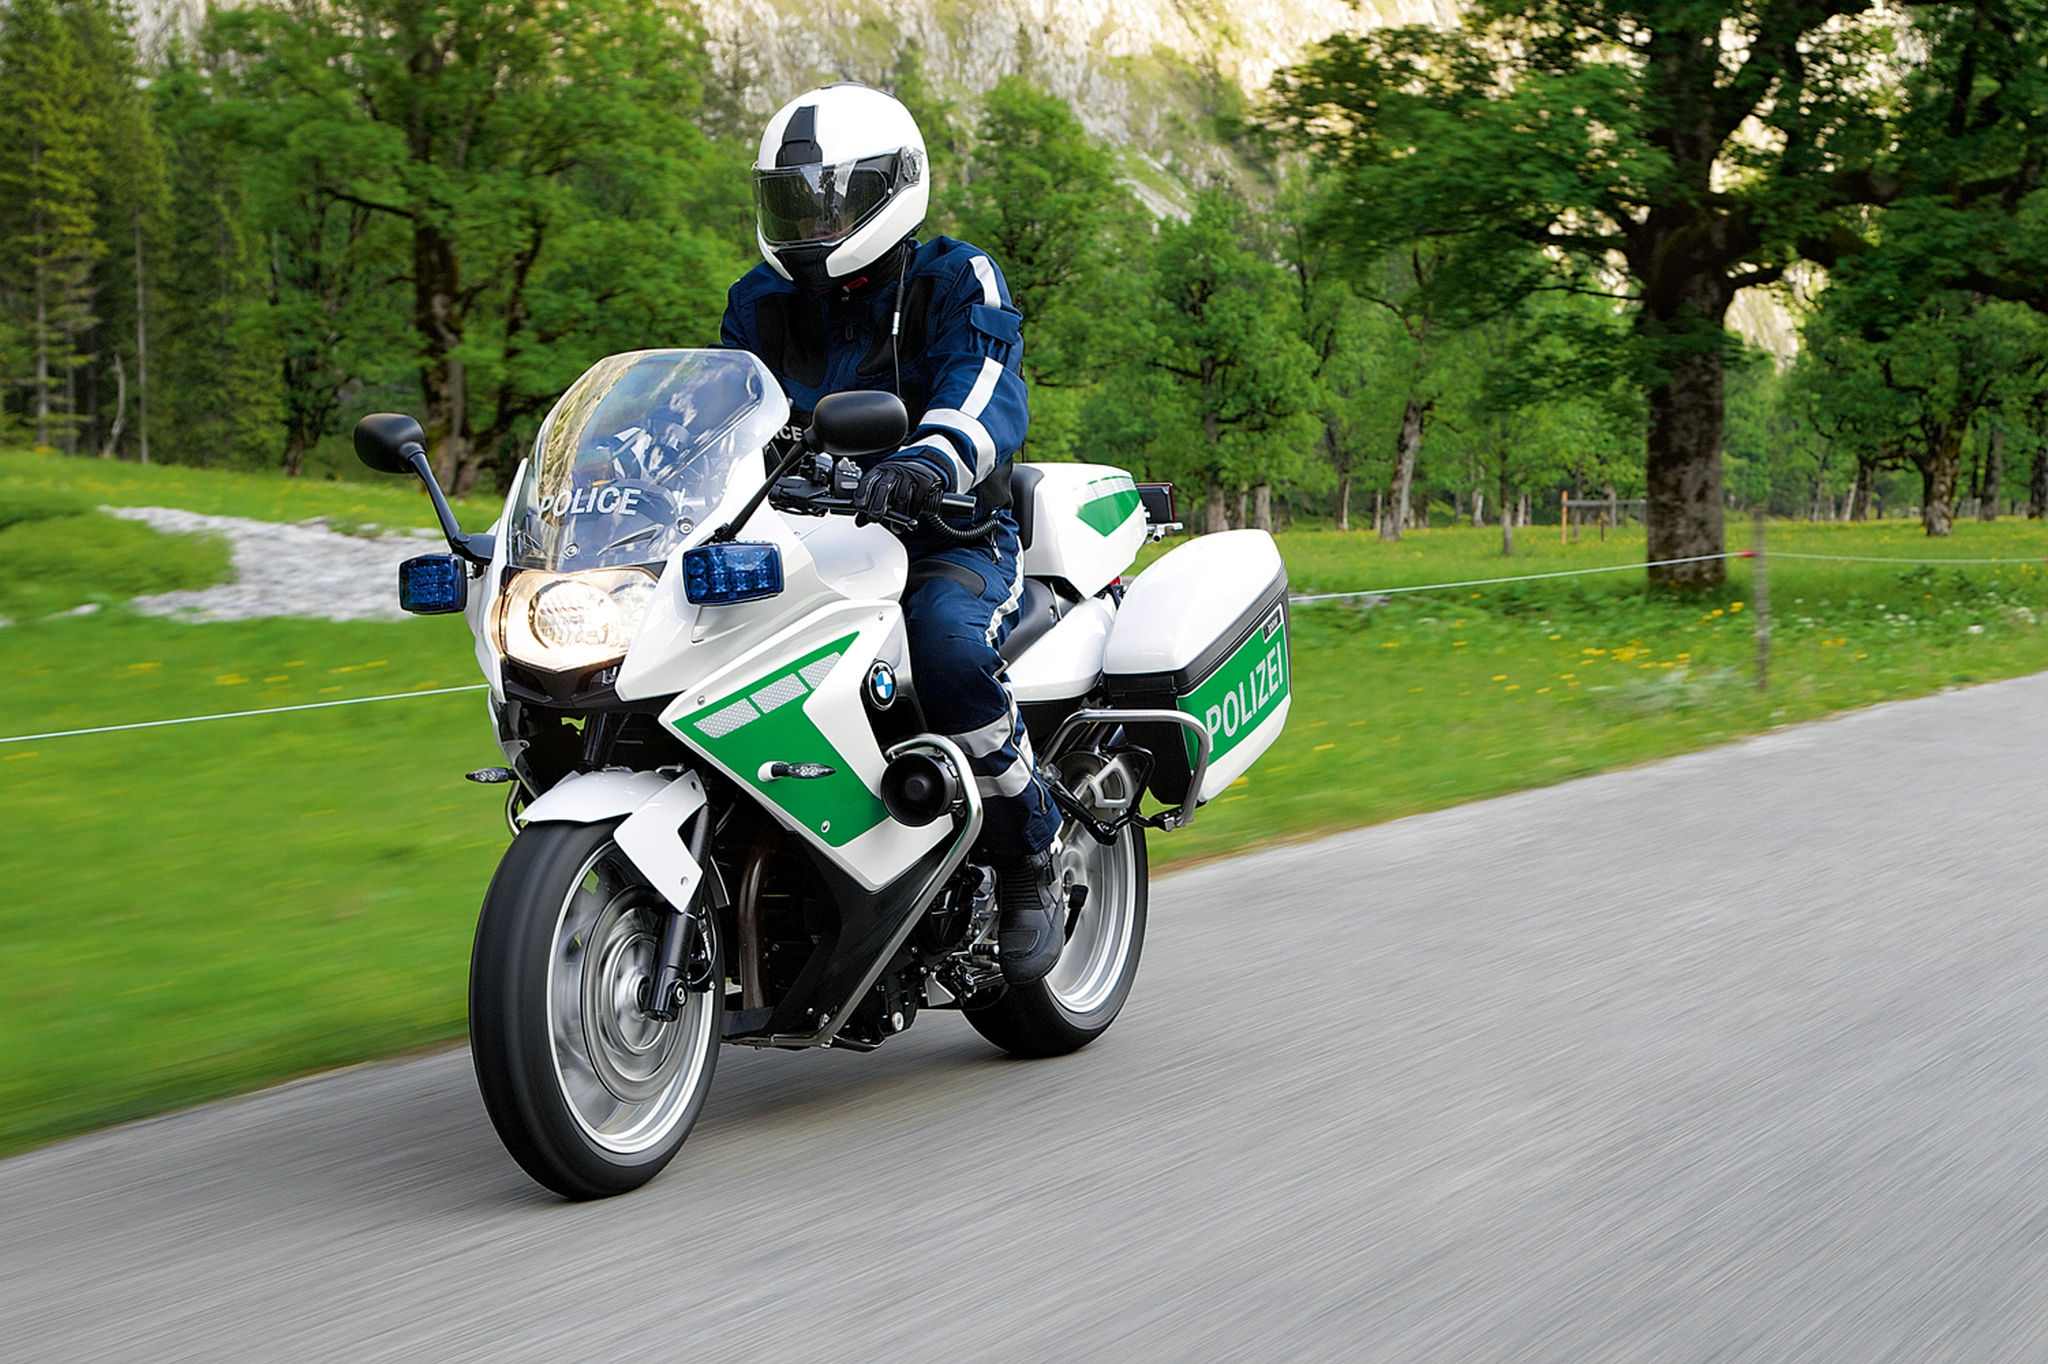 BMW Shows Police-Spec C 600 Scooter and More at Milipol ...